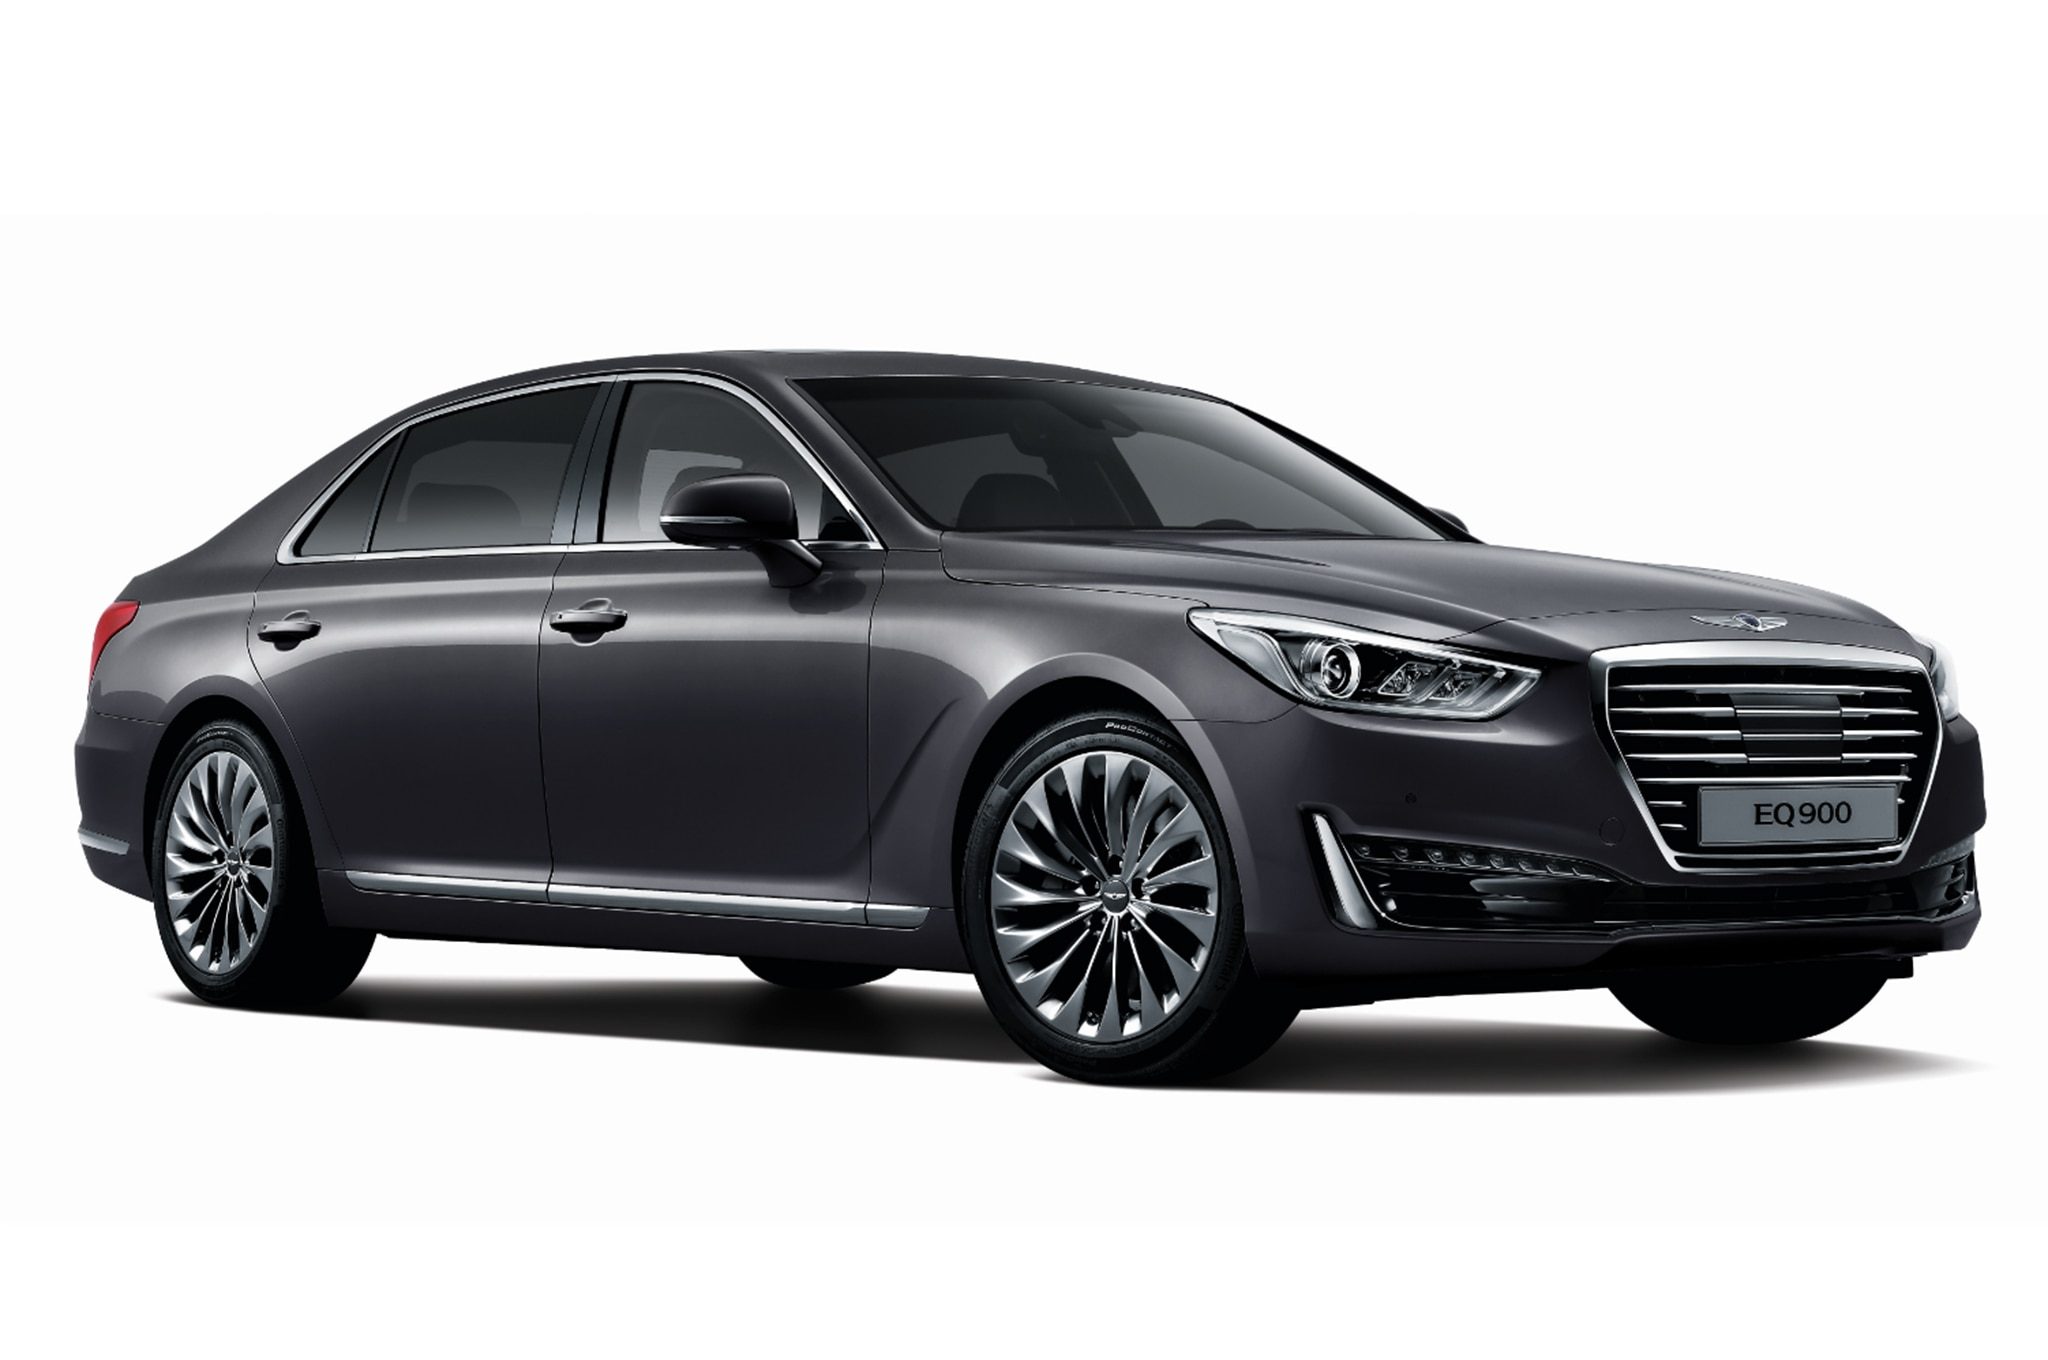 2017 genesis g90 launches hyundai 39 s new luxury brand in detroit. Black Bedroom Furniture Sets. Home Design Ideas